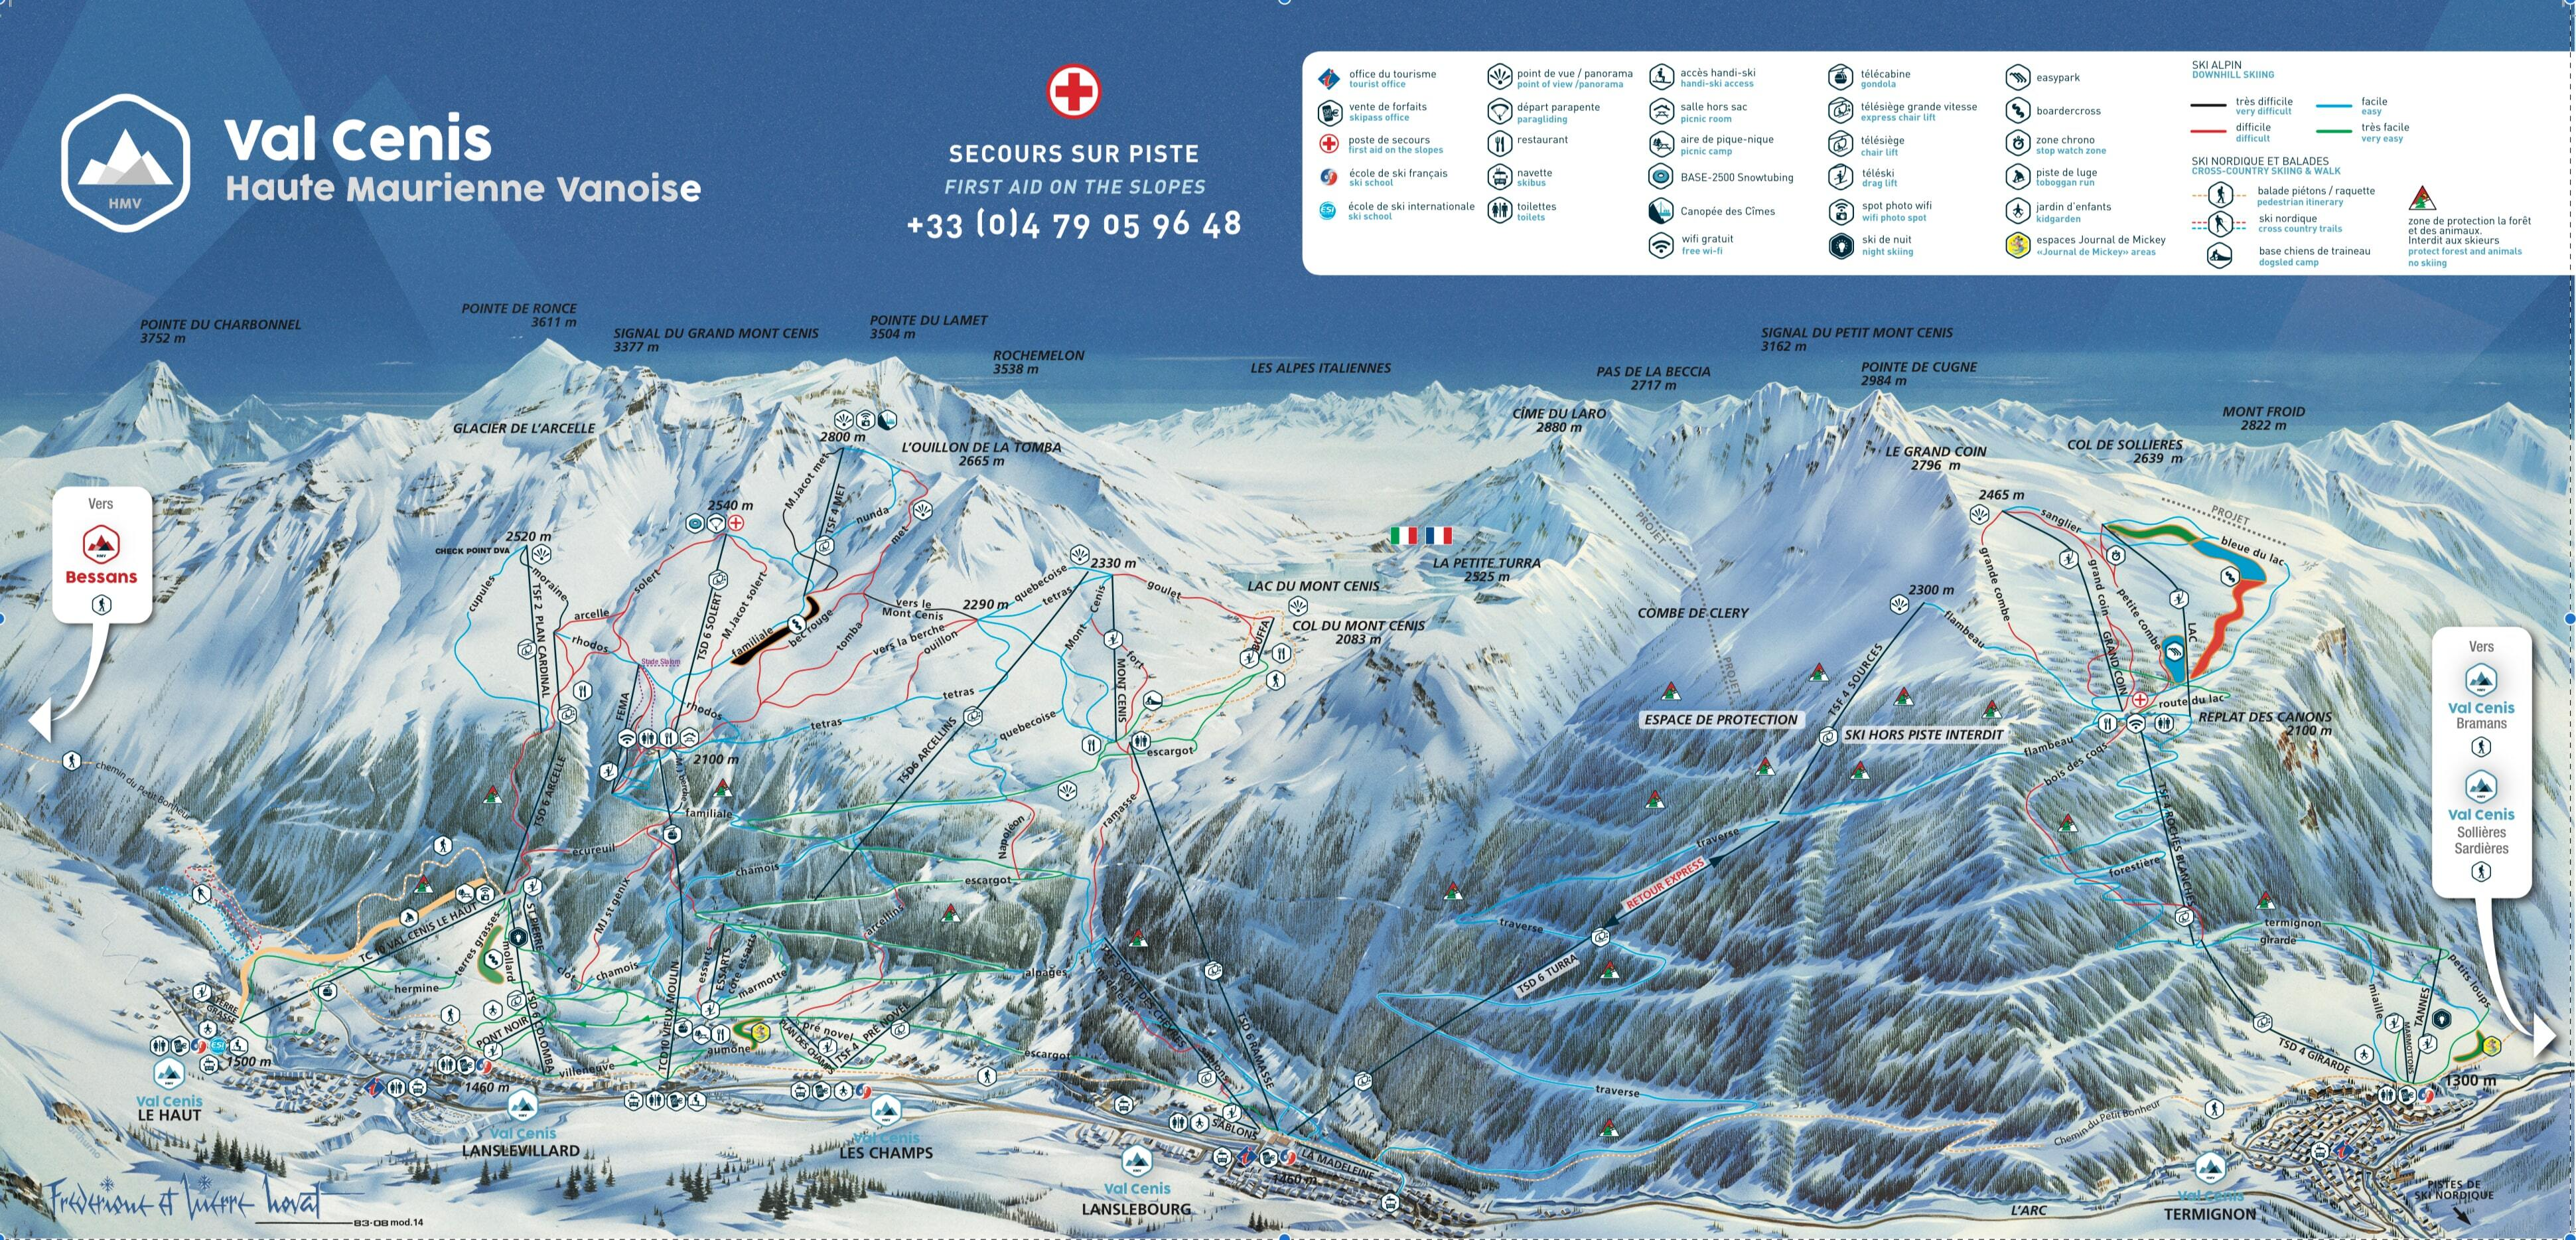 Val Cenis Piste / Trail Map